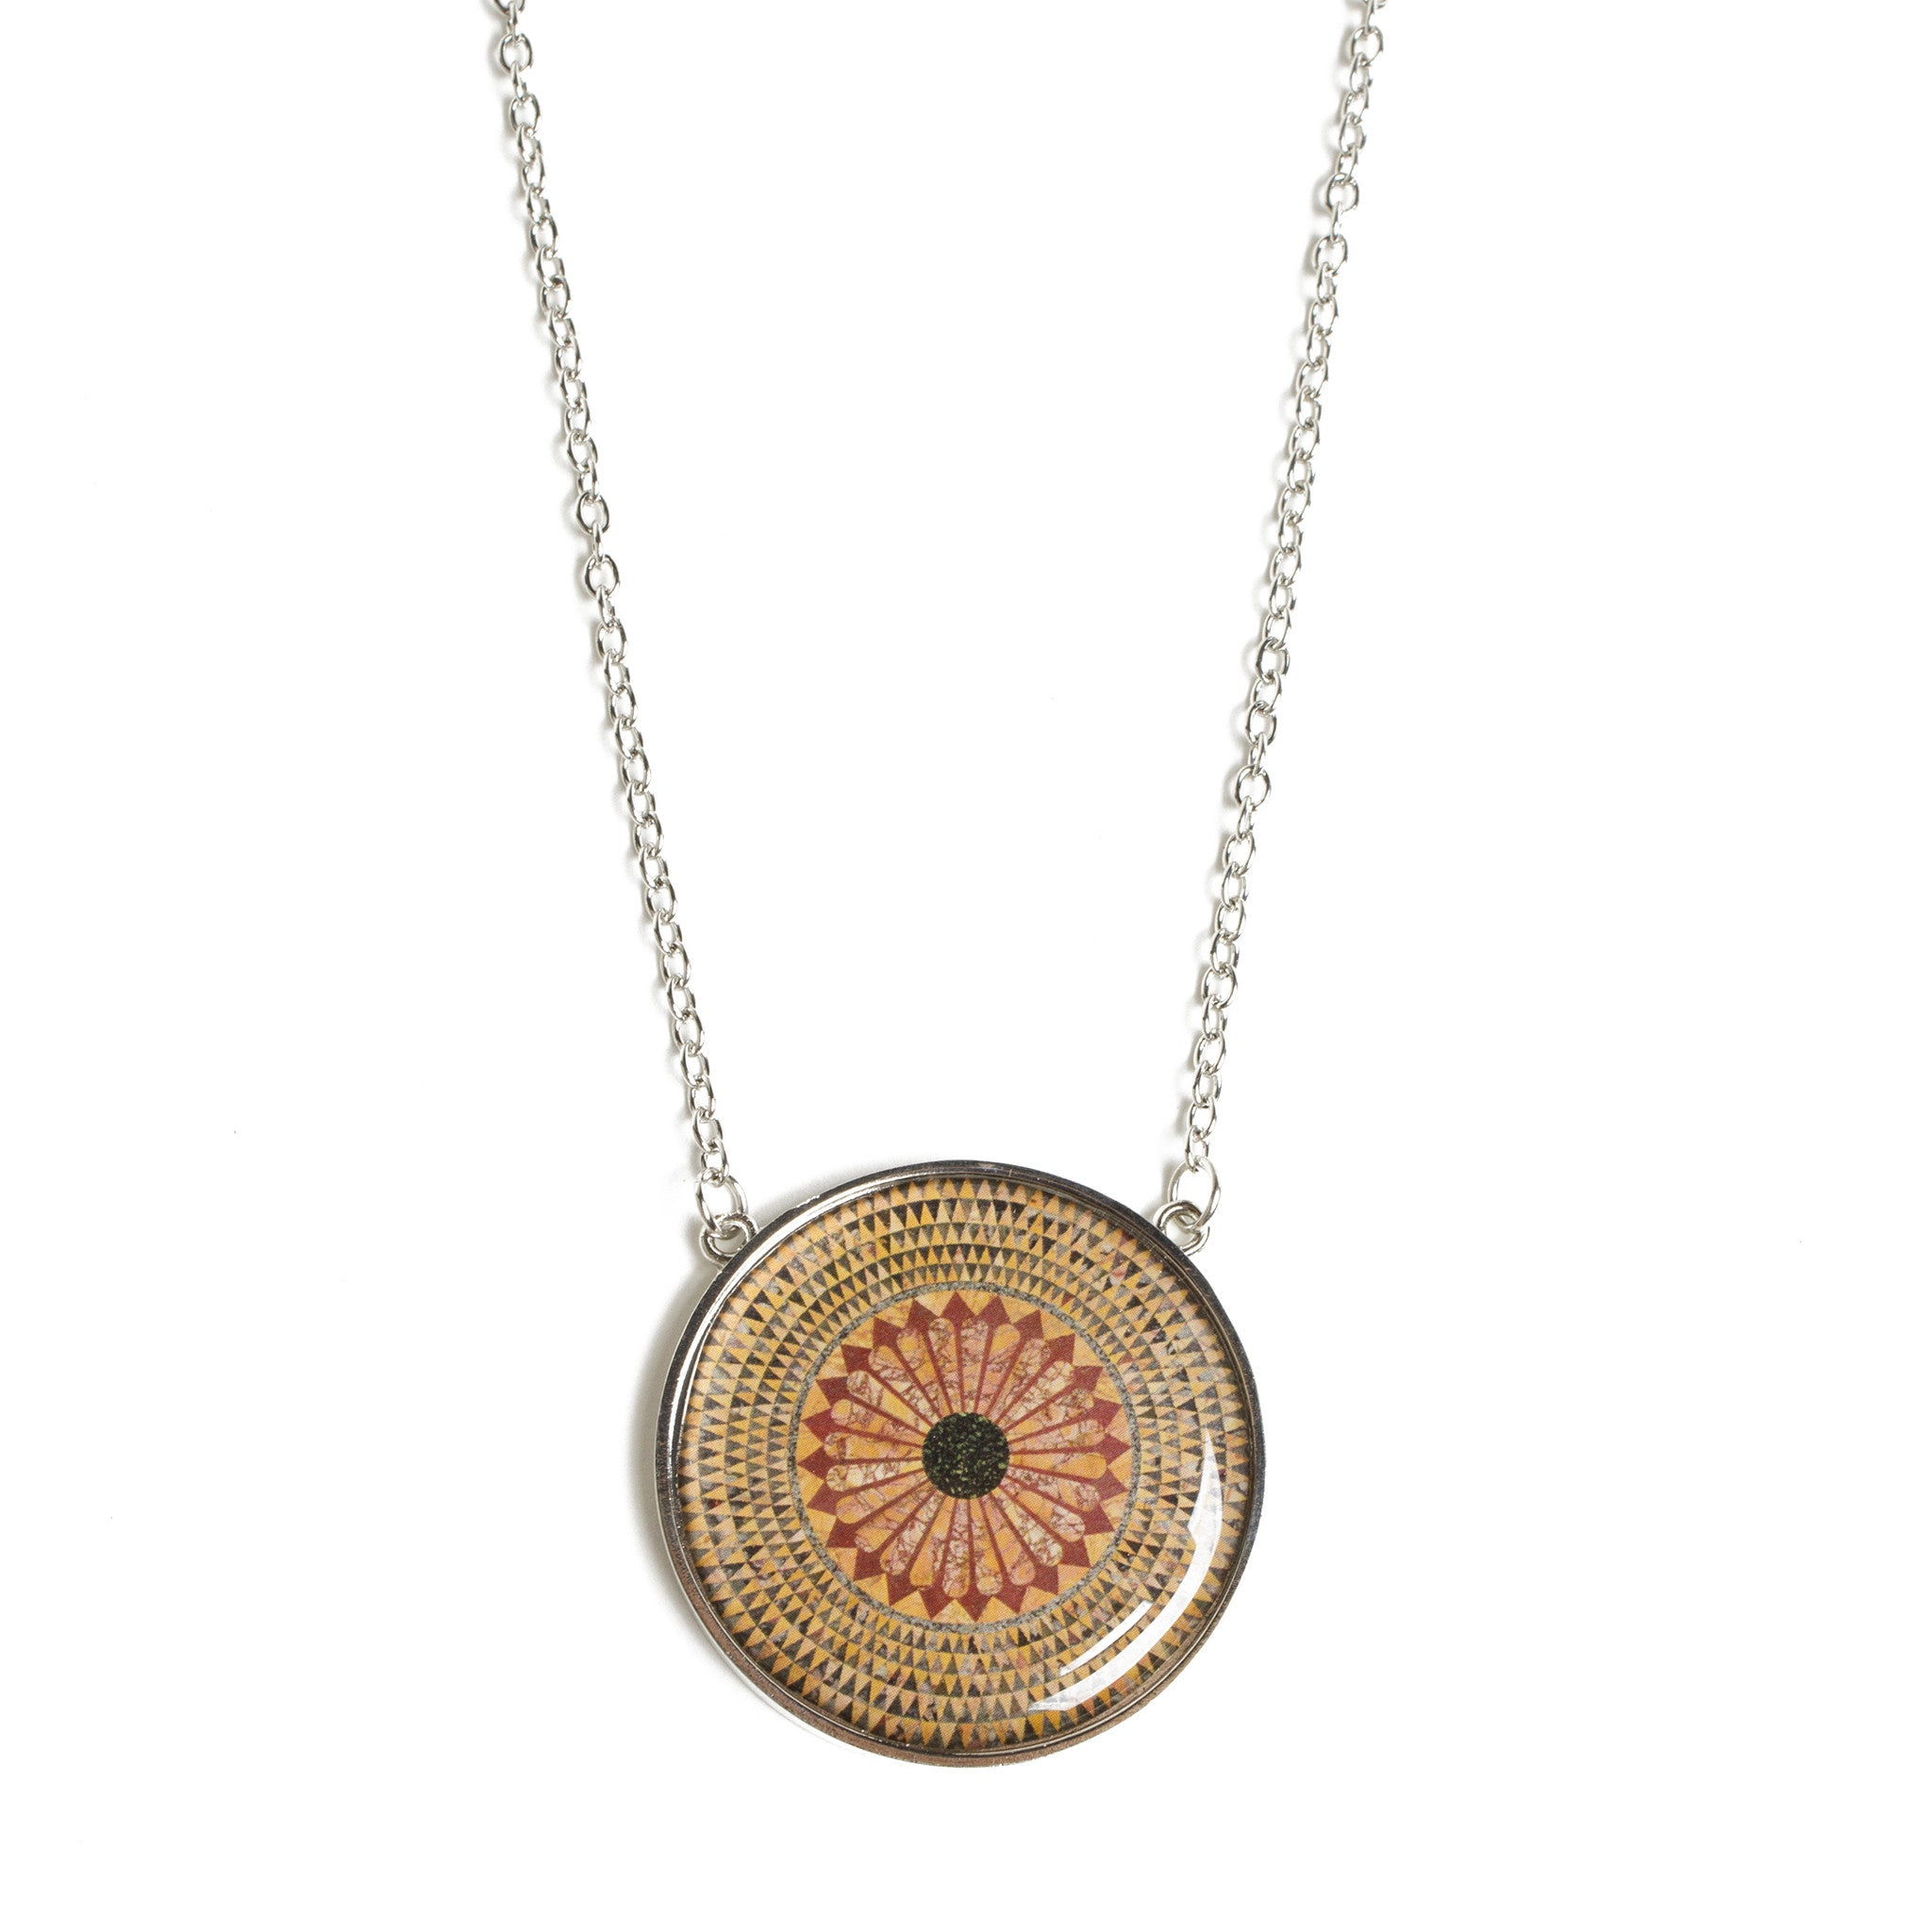 brand mother products necklace circle lb the fullsizerender pendant